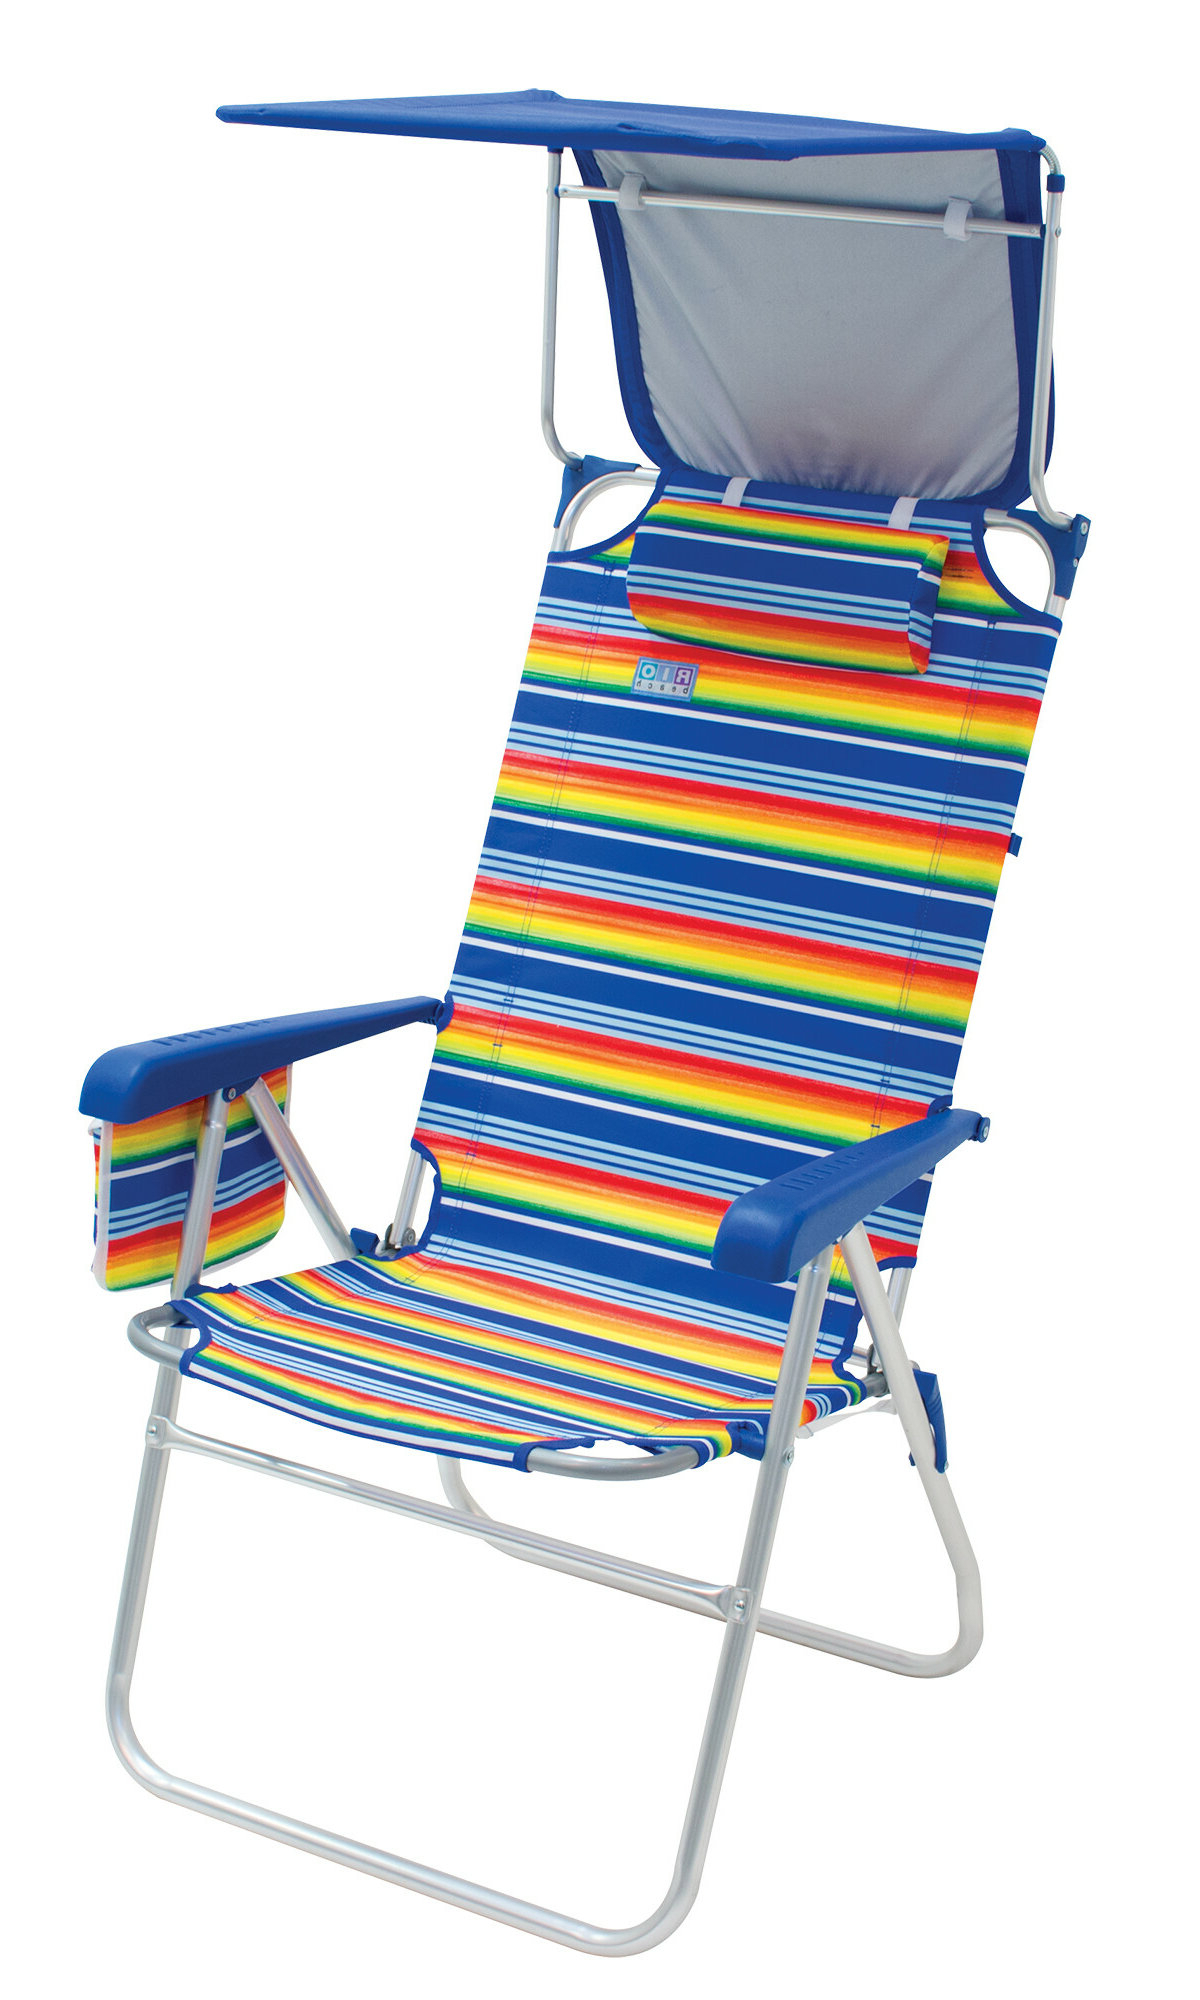 Mesh Fabric With Steel Frame Chairs With Canopy And Tray Regarding Most Recently Released Beach Chair Canopy Beach & Lawn Chairs You'll Love In (View 18 of 25)